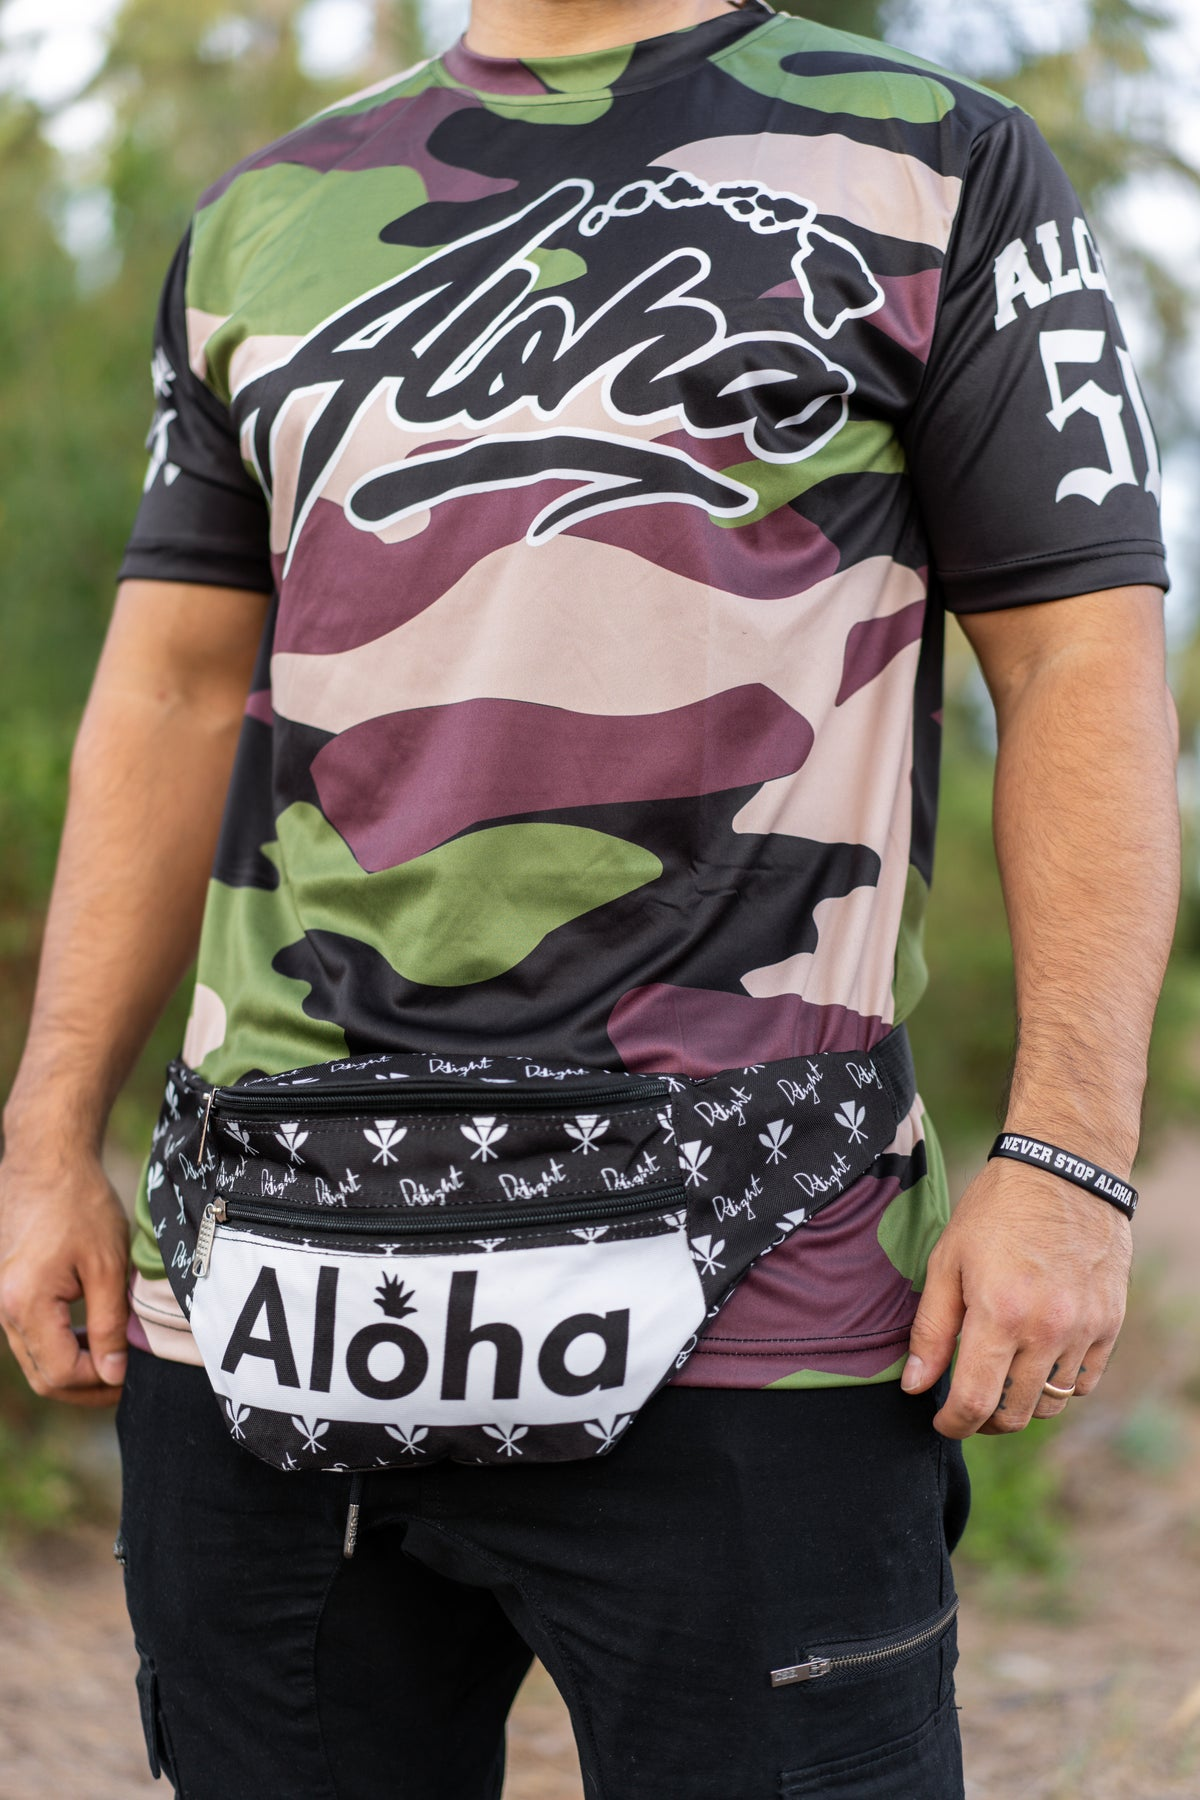 Aloha Slapped Black/White Fanny Pack